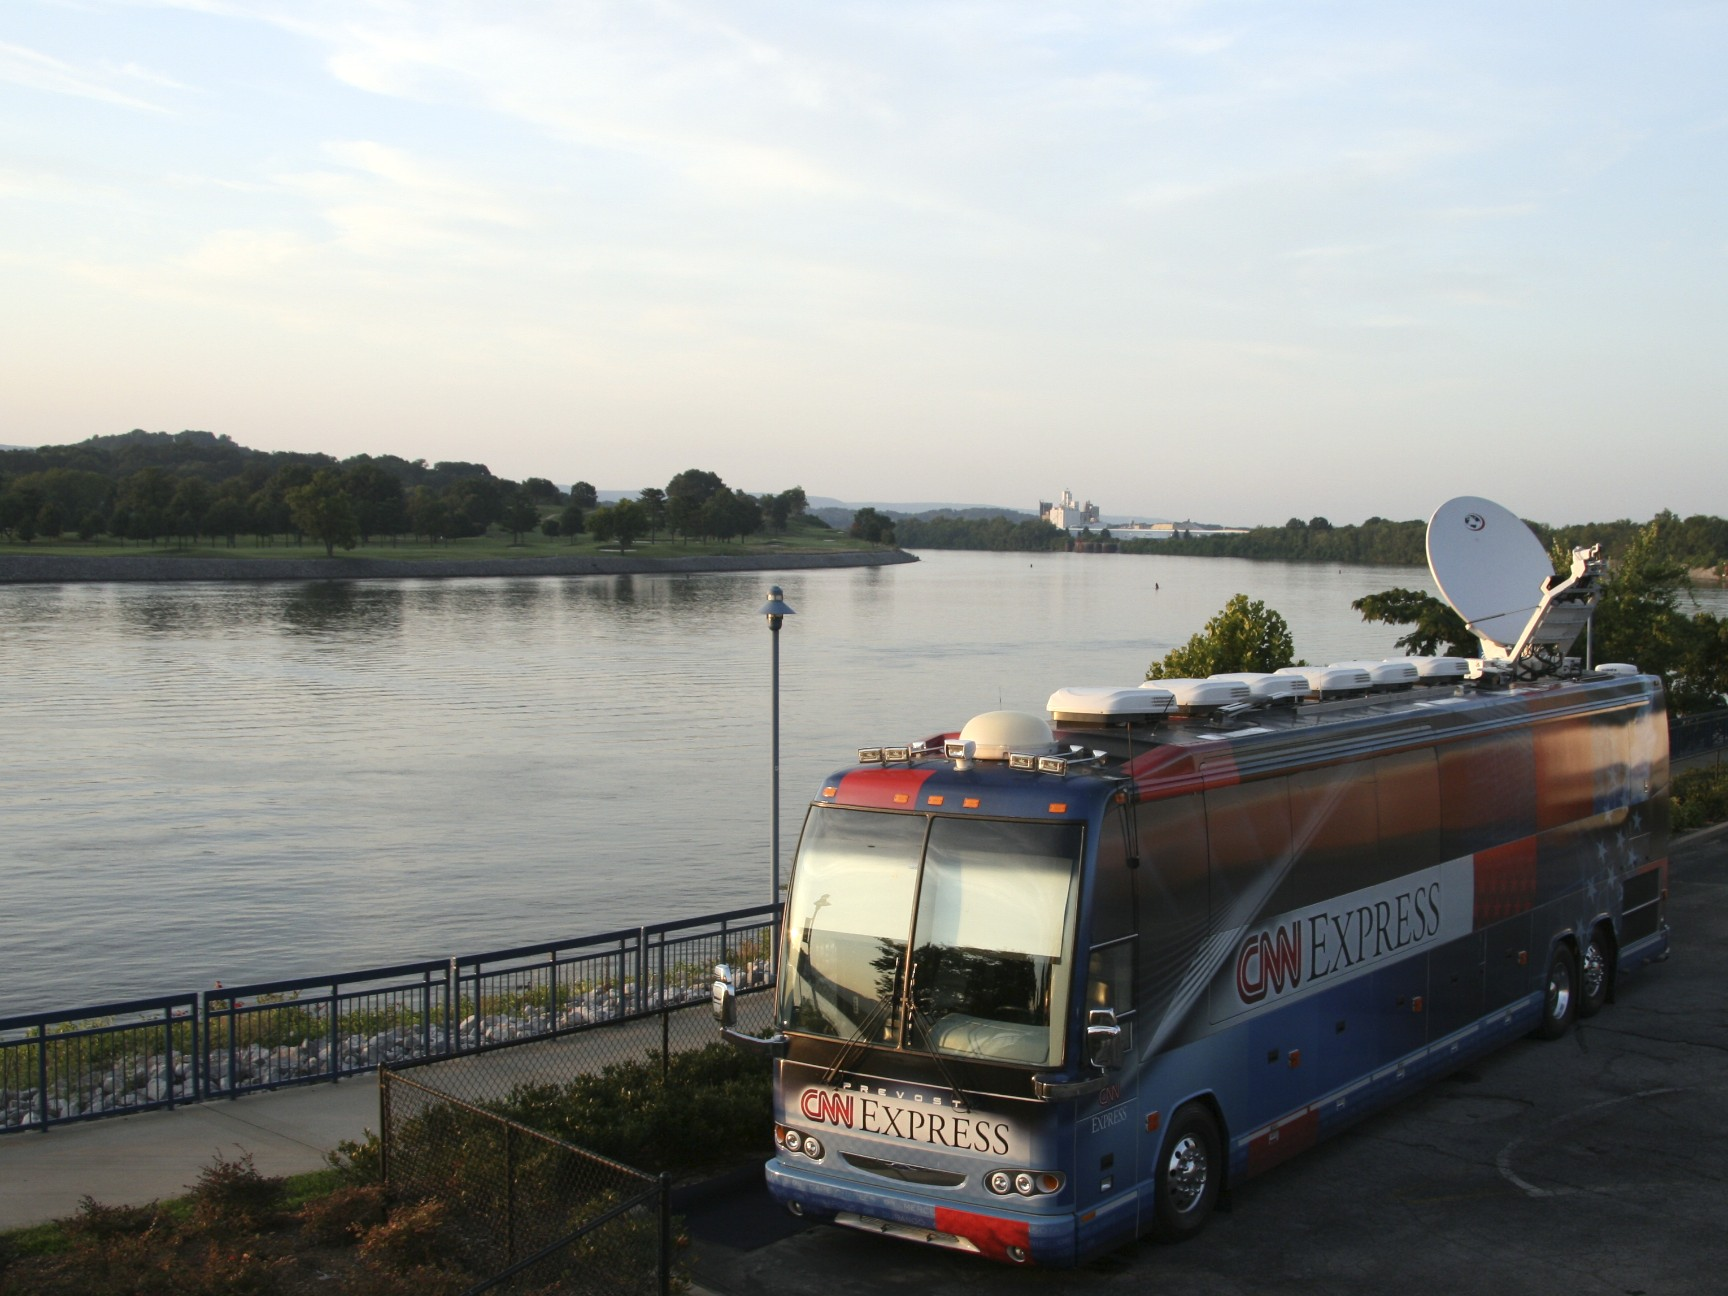 The CNN Express in Chattanooga, TN